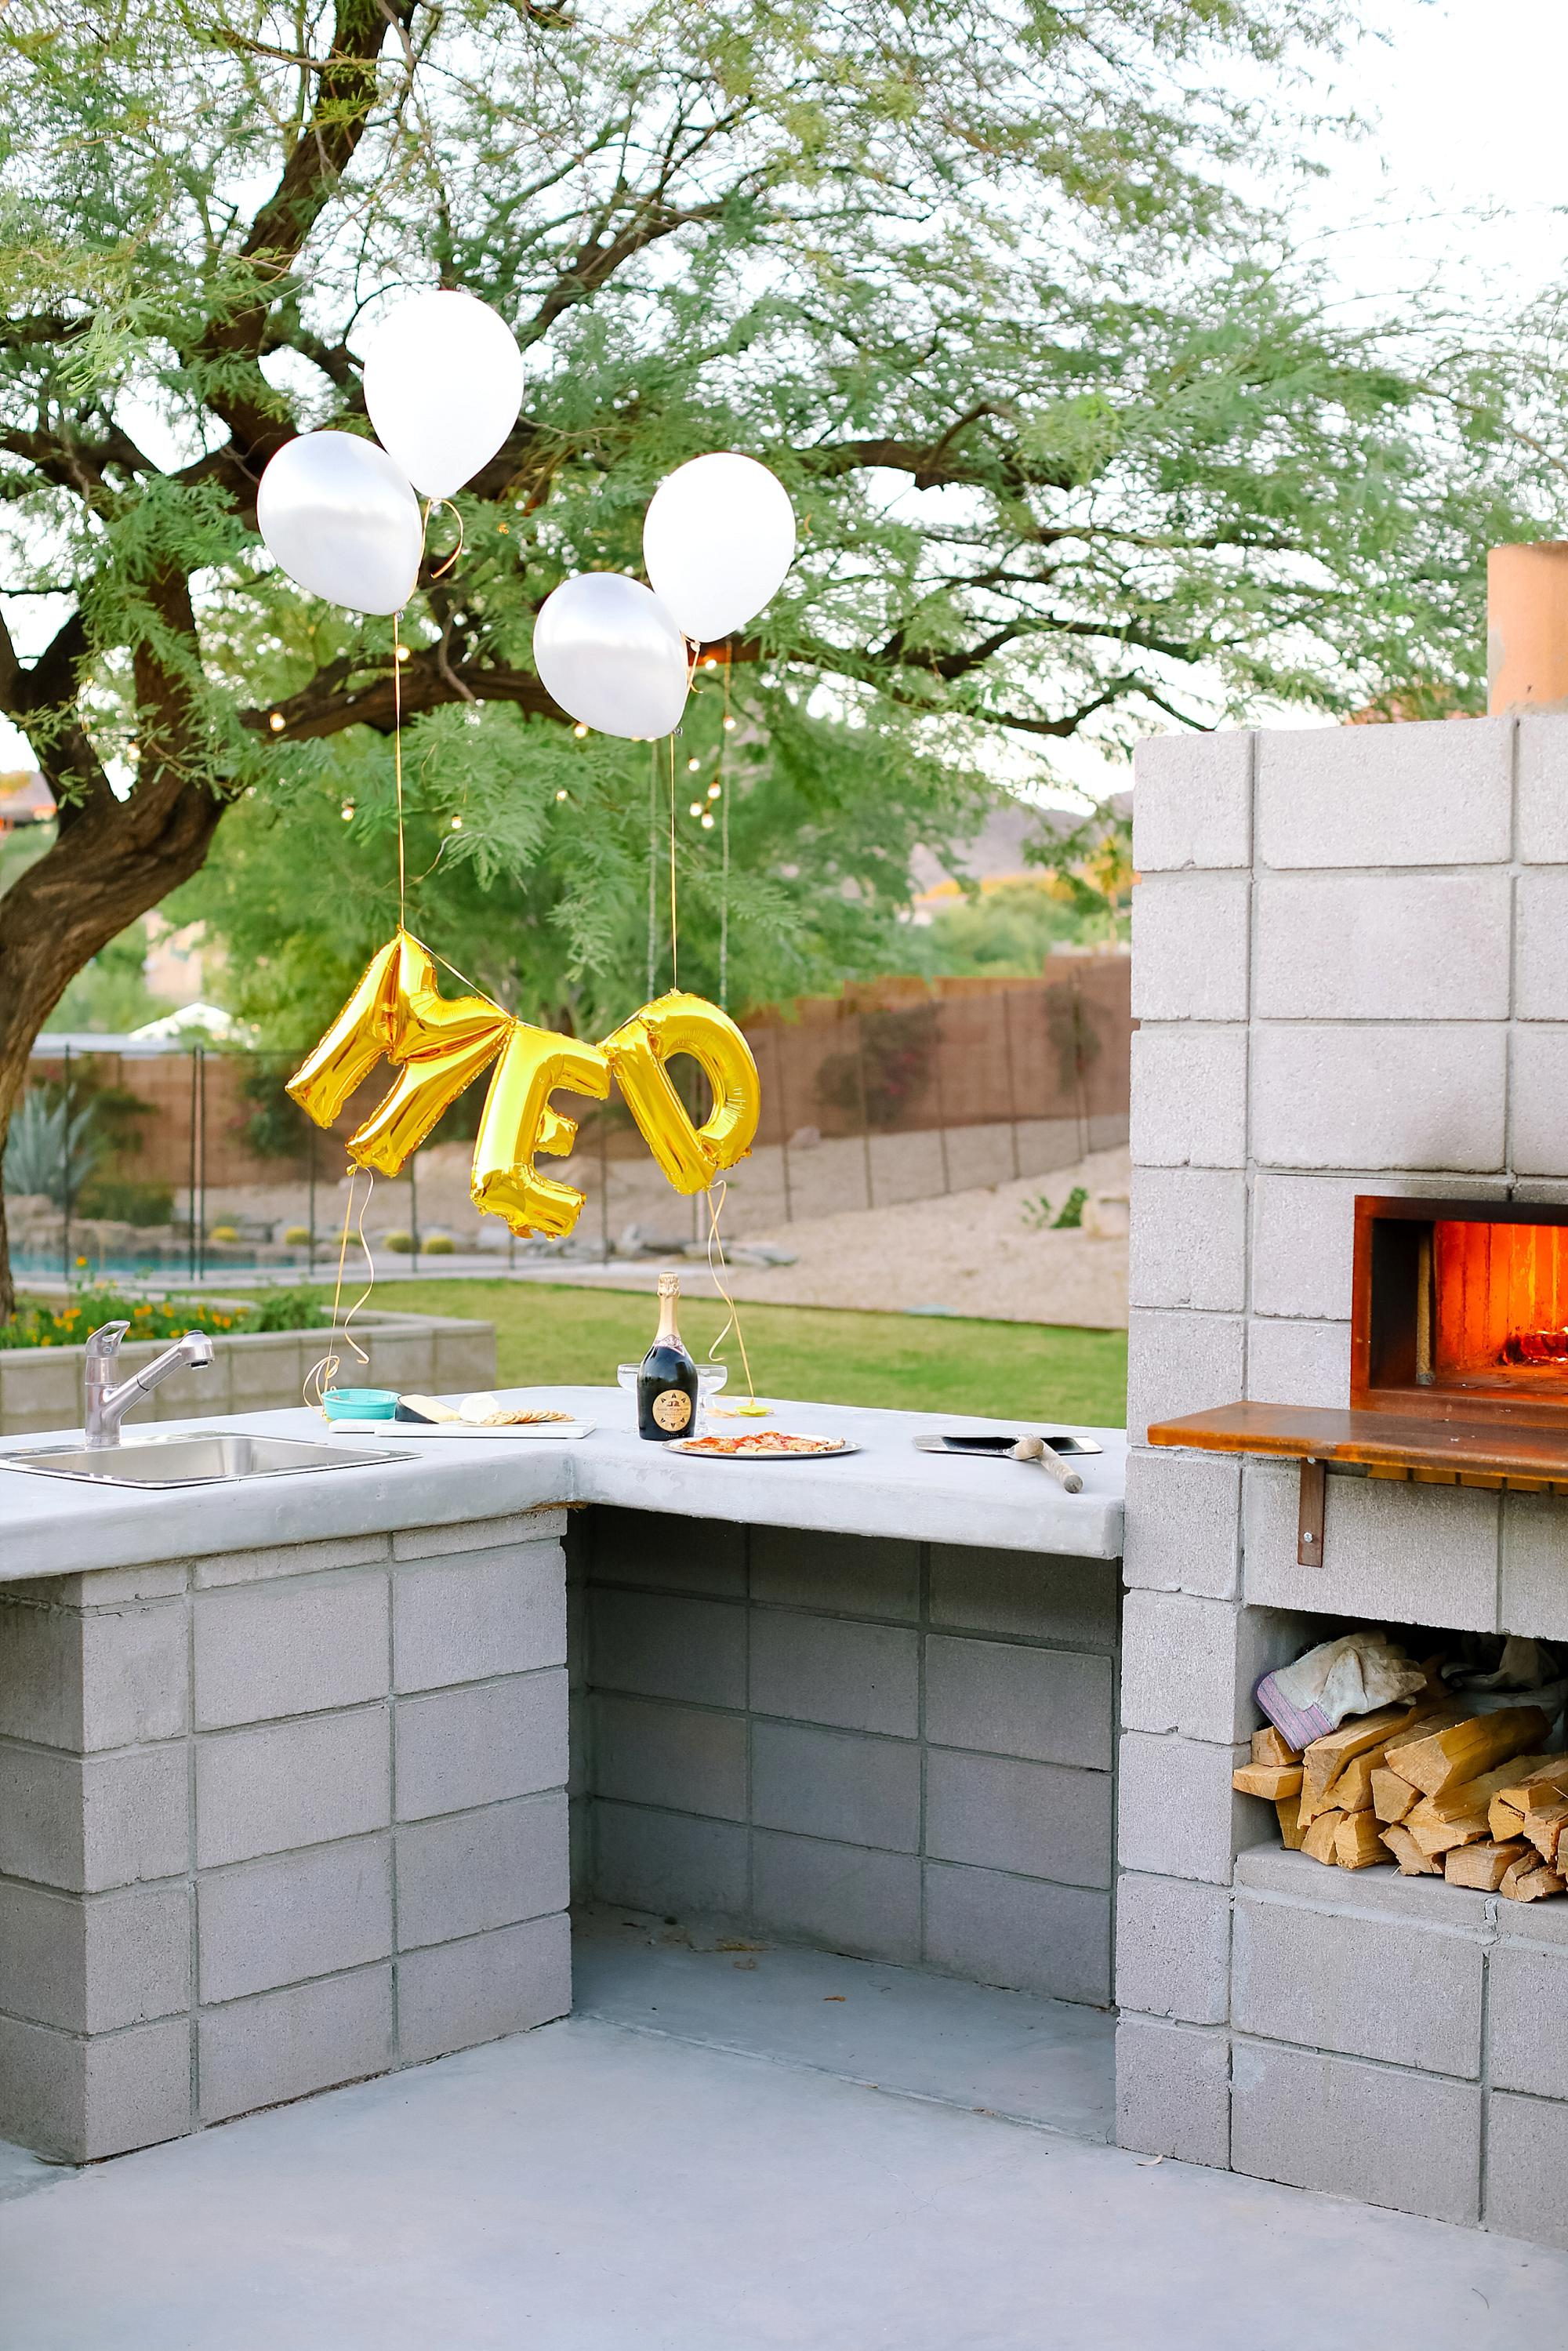 santa margherita prosecco superiore set by mylar alphabet balloons and the an outdoor pizza fireplace